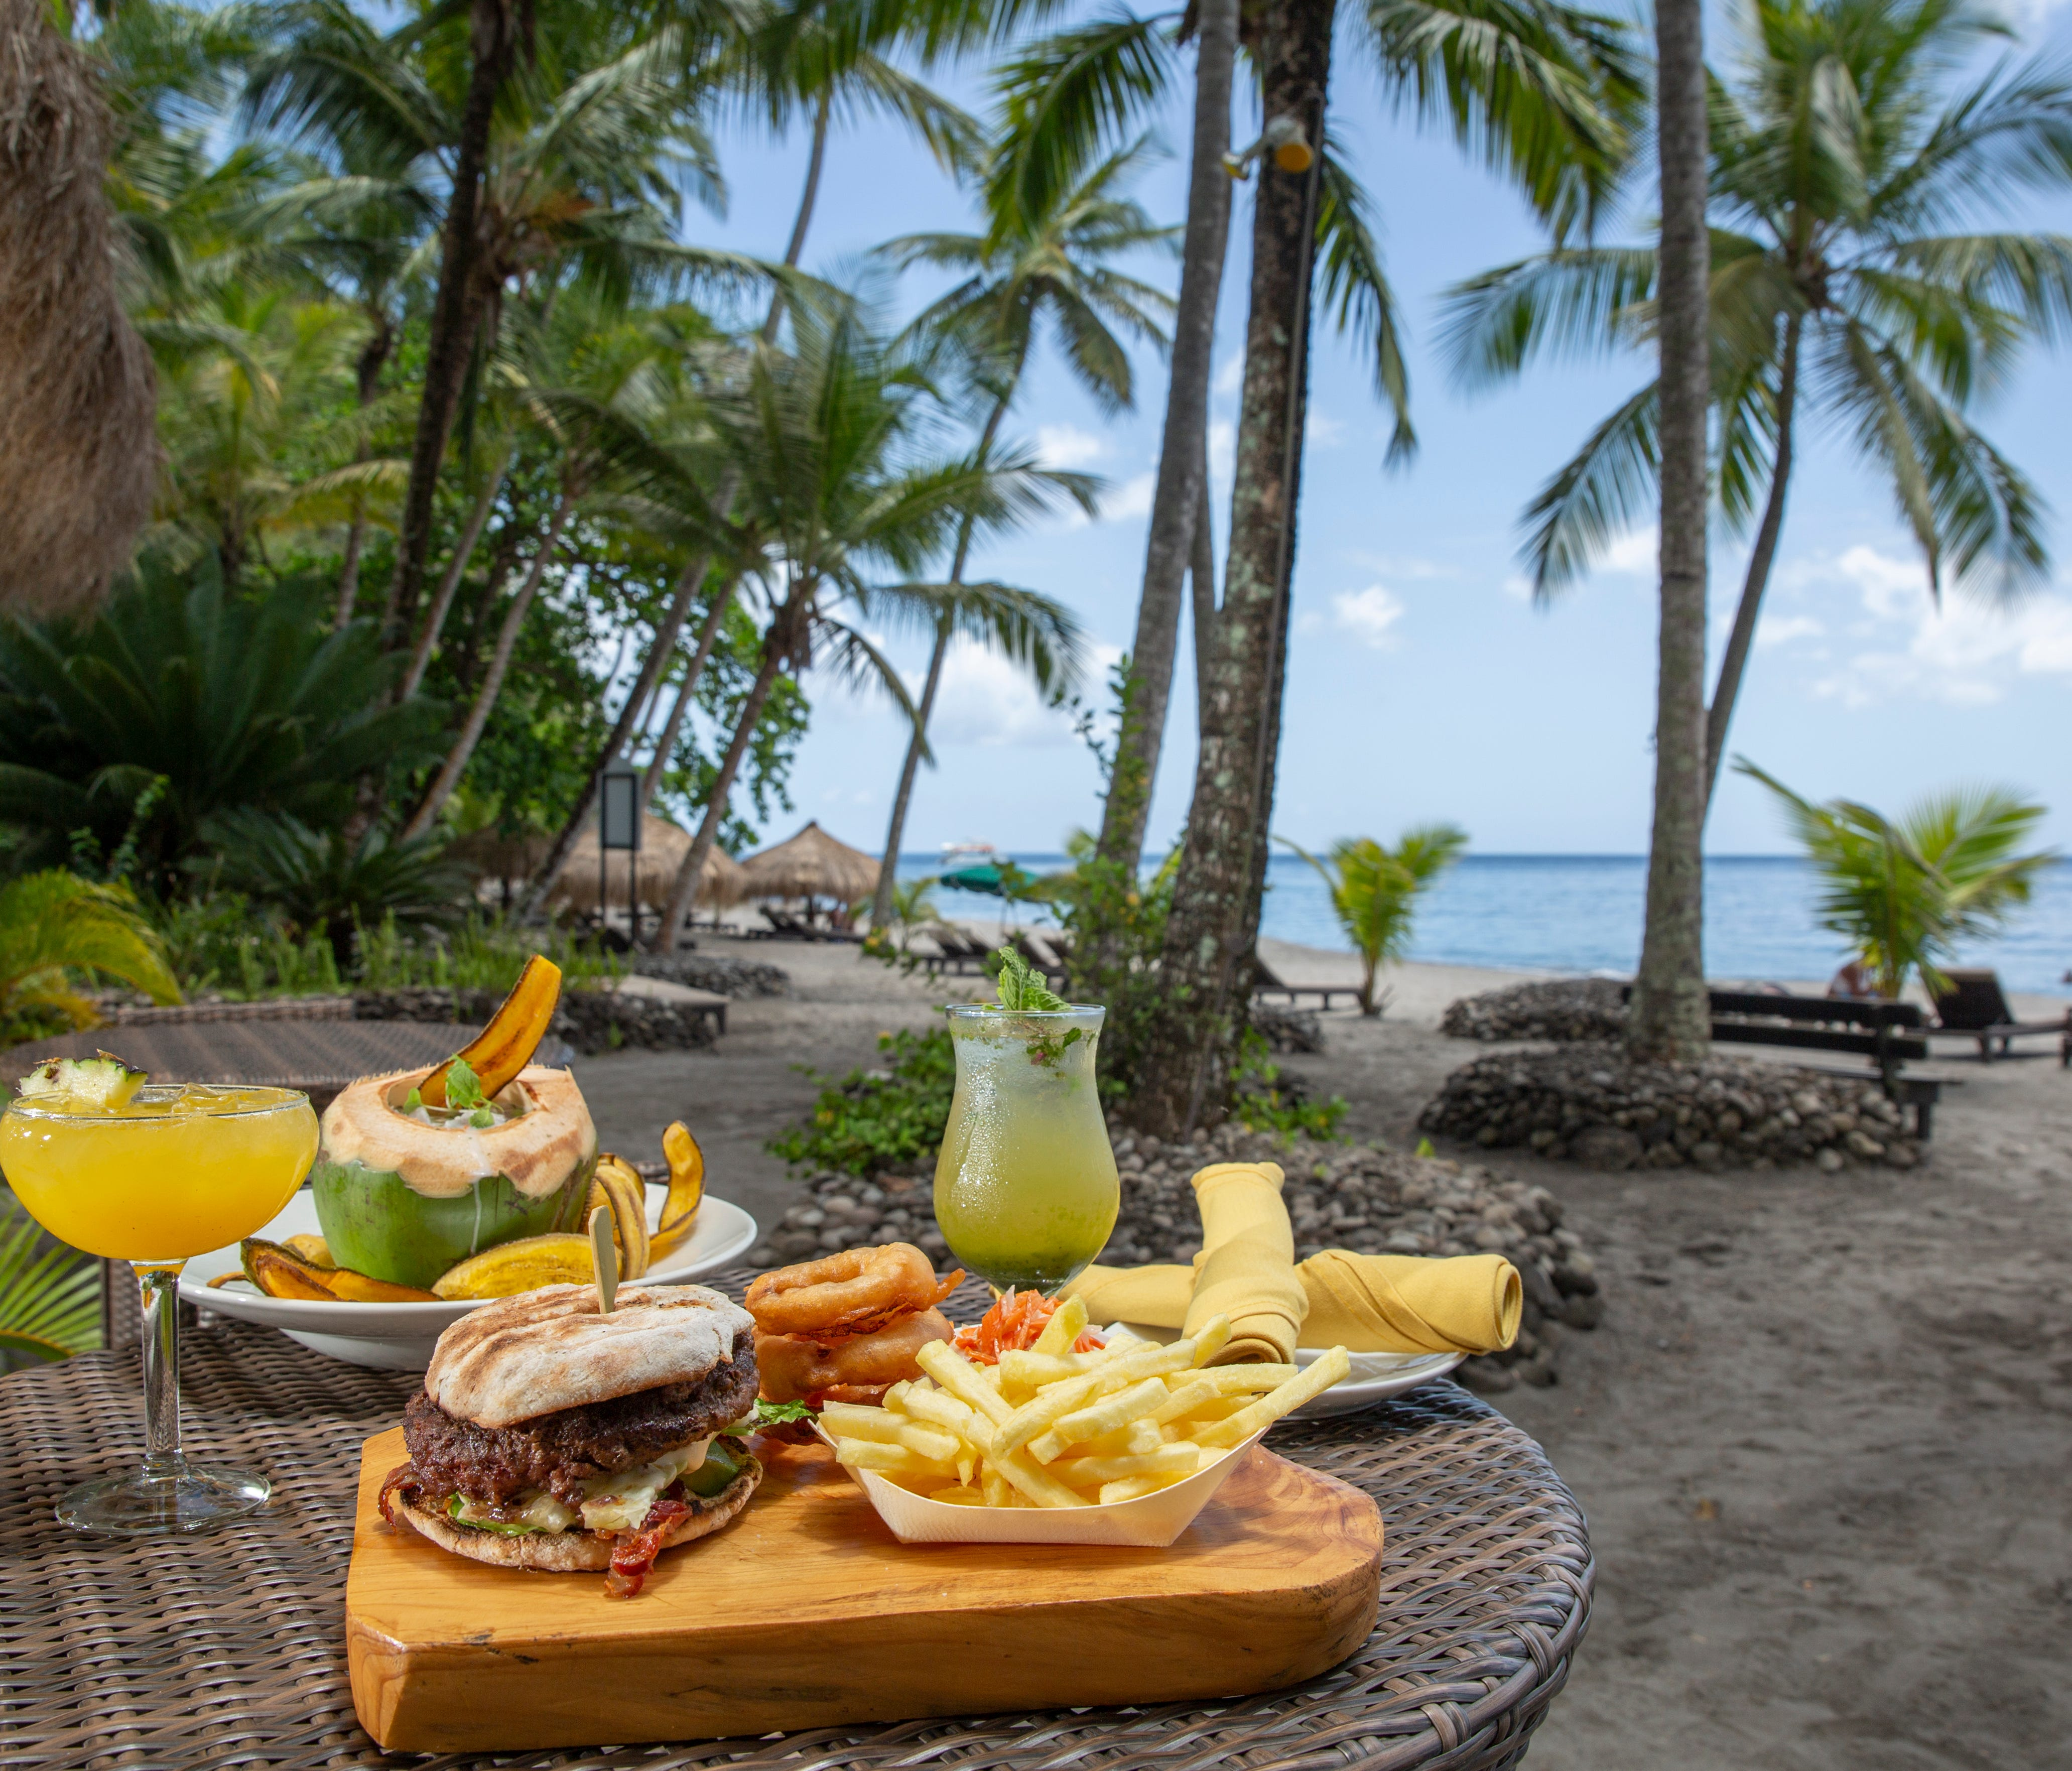 At the Jungle Grill in St. Lucia, minty mojitos and burgers are the star attractions.